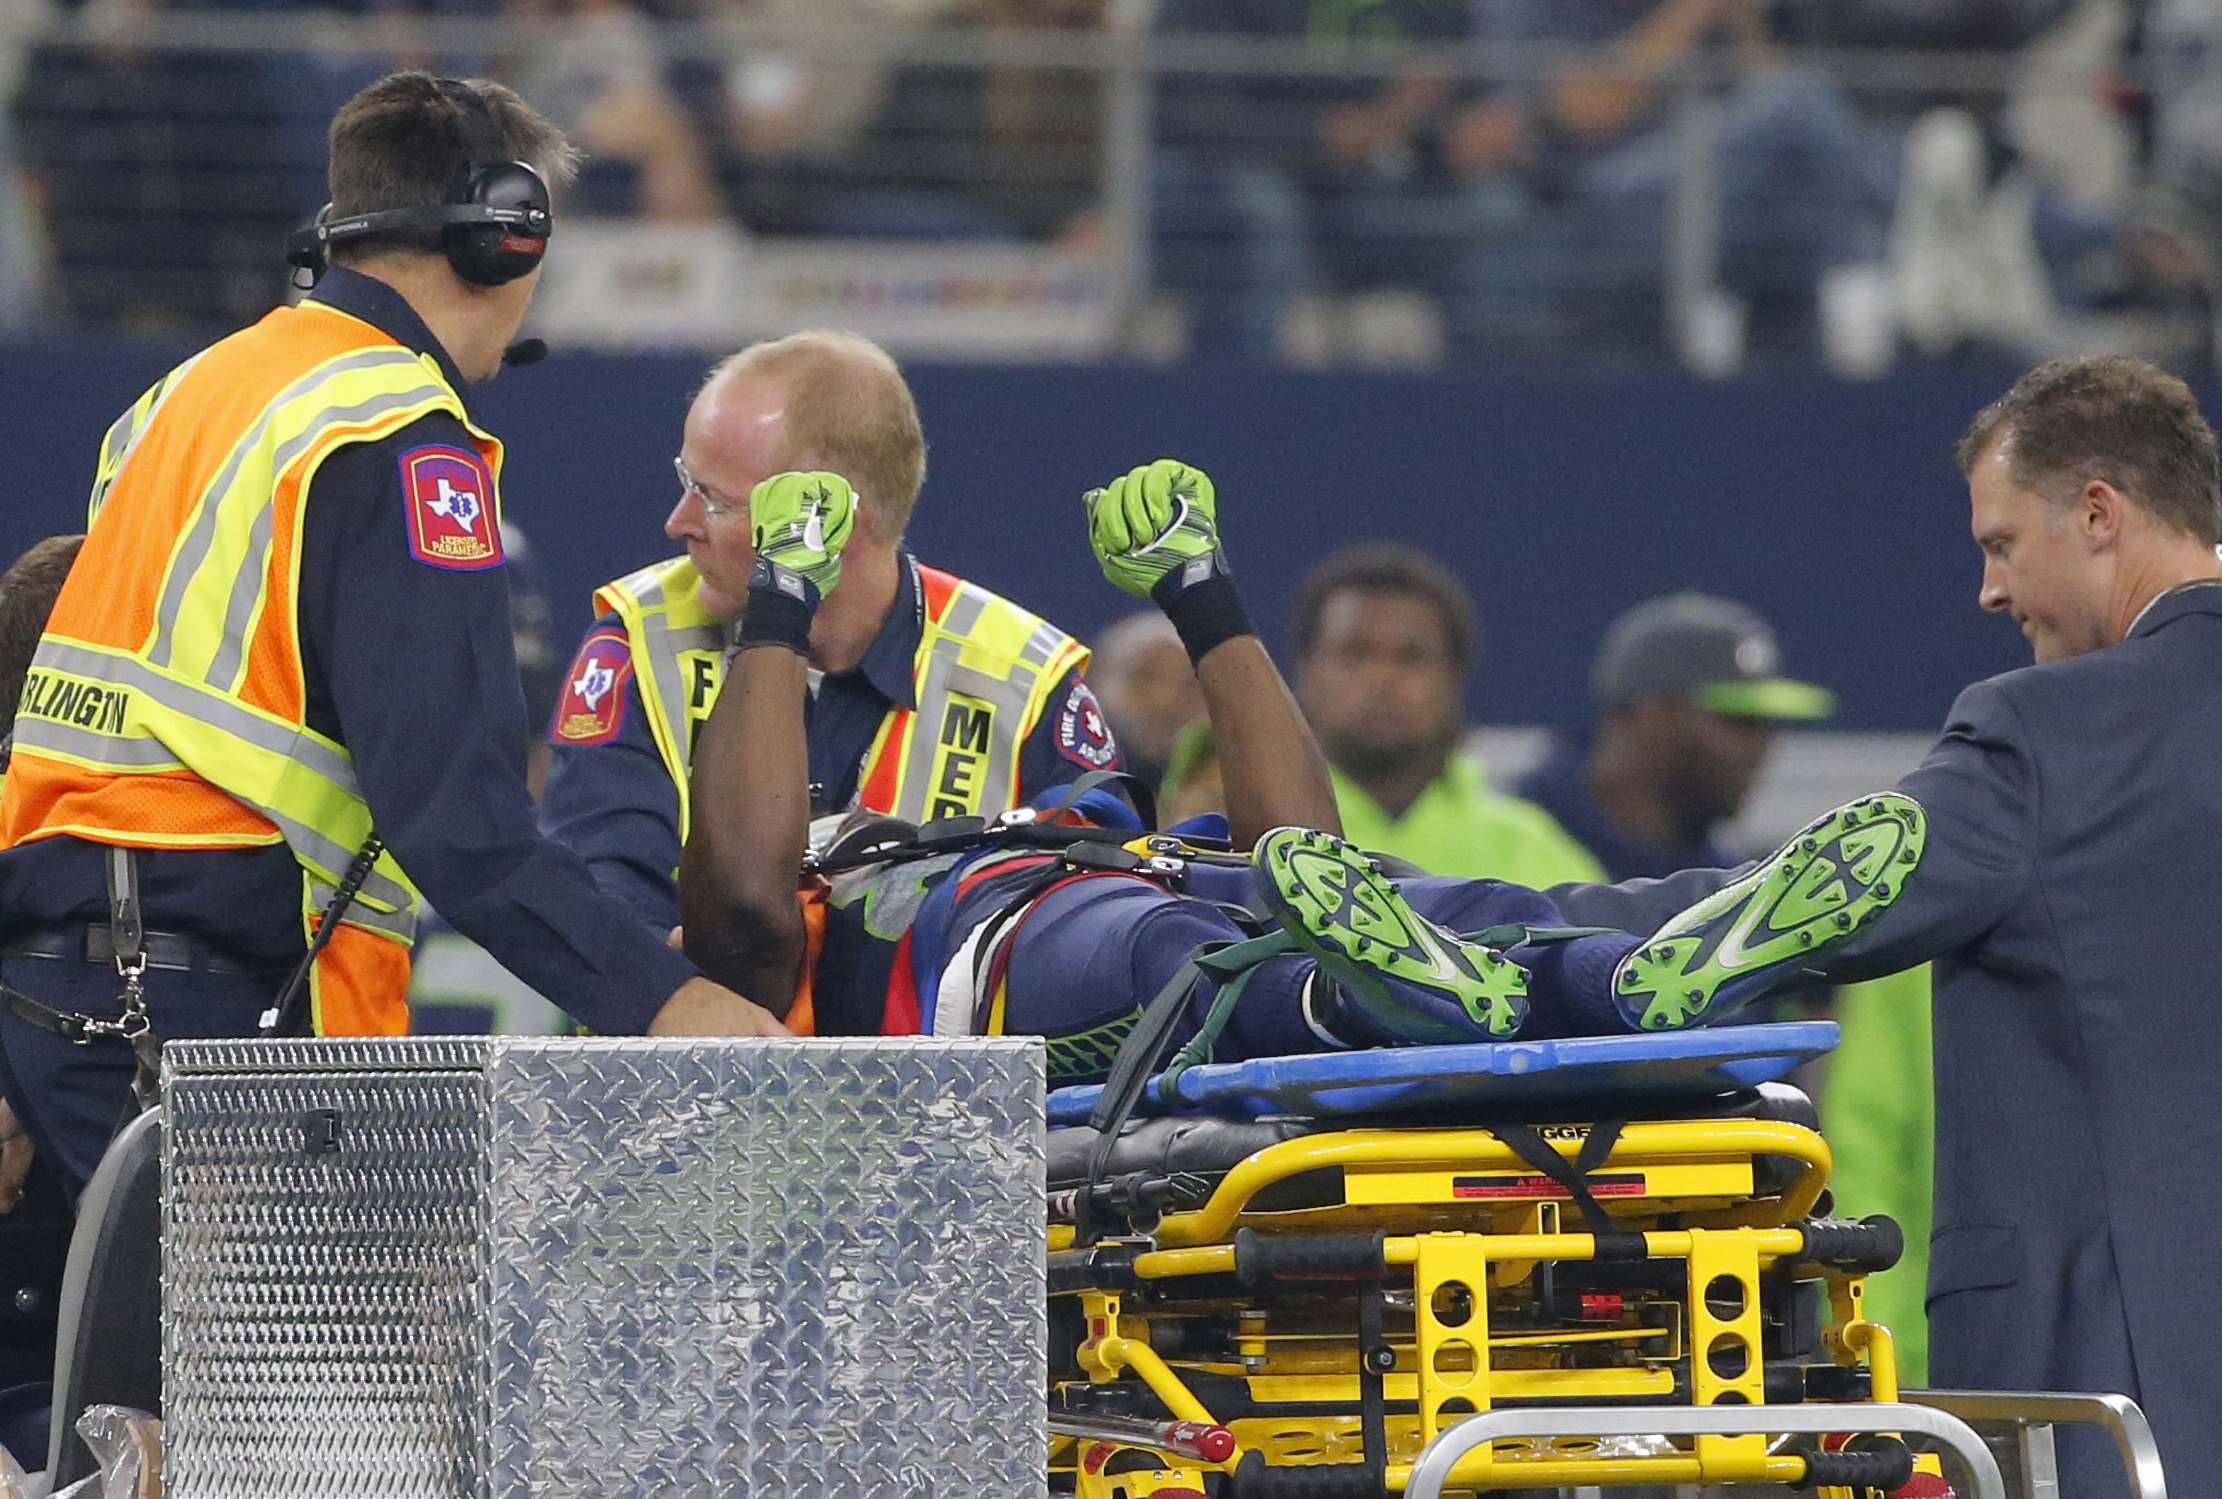 Seattle Seahawks' Ricardo Lockette holds up his hands as medical crew cart him off the field after suffering an unknown injury in the first half of an NFL football game against the Dallas Cowboys, Sunday, Nov. 1, 2015, in Arlington, Texas. (AP Photo/Brand